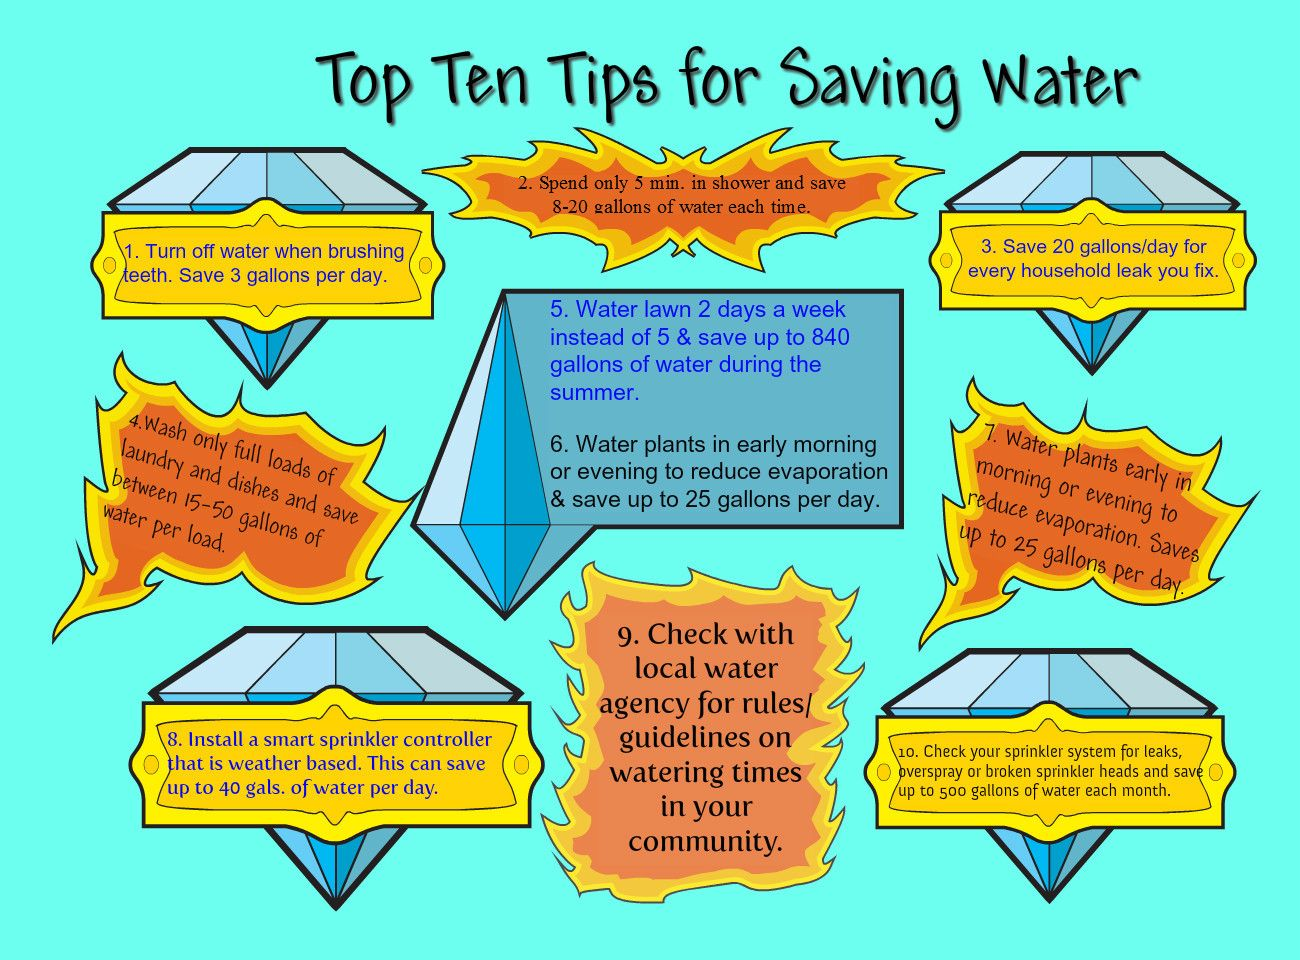 Water Conservation Tips Top Ten Tips For Saving Water By